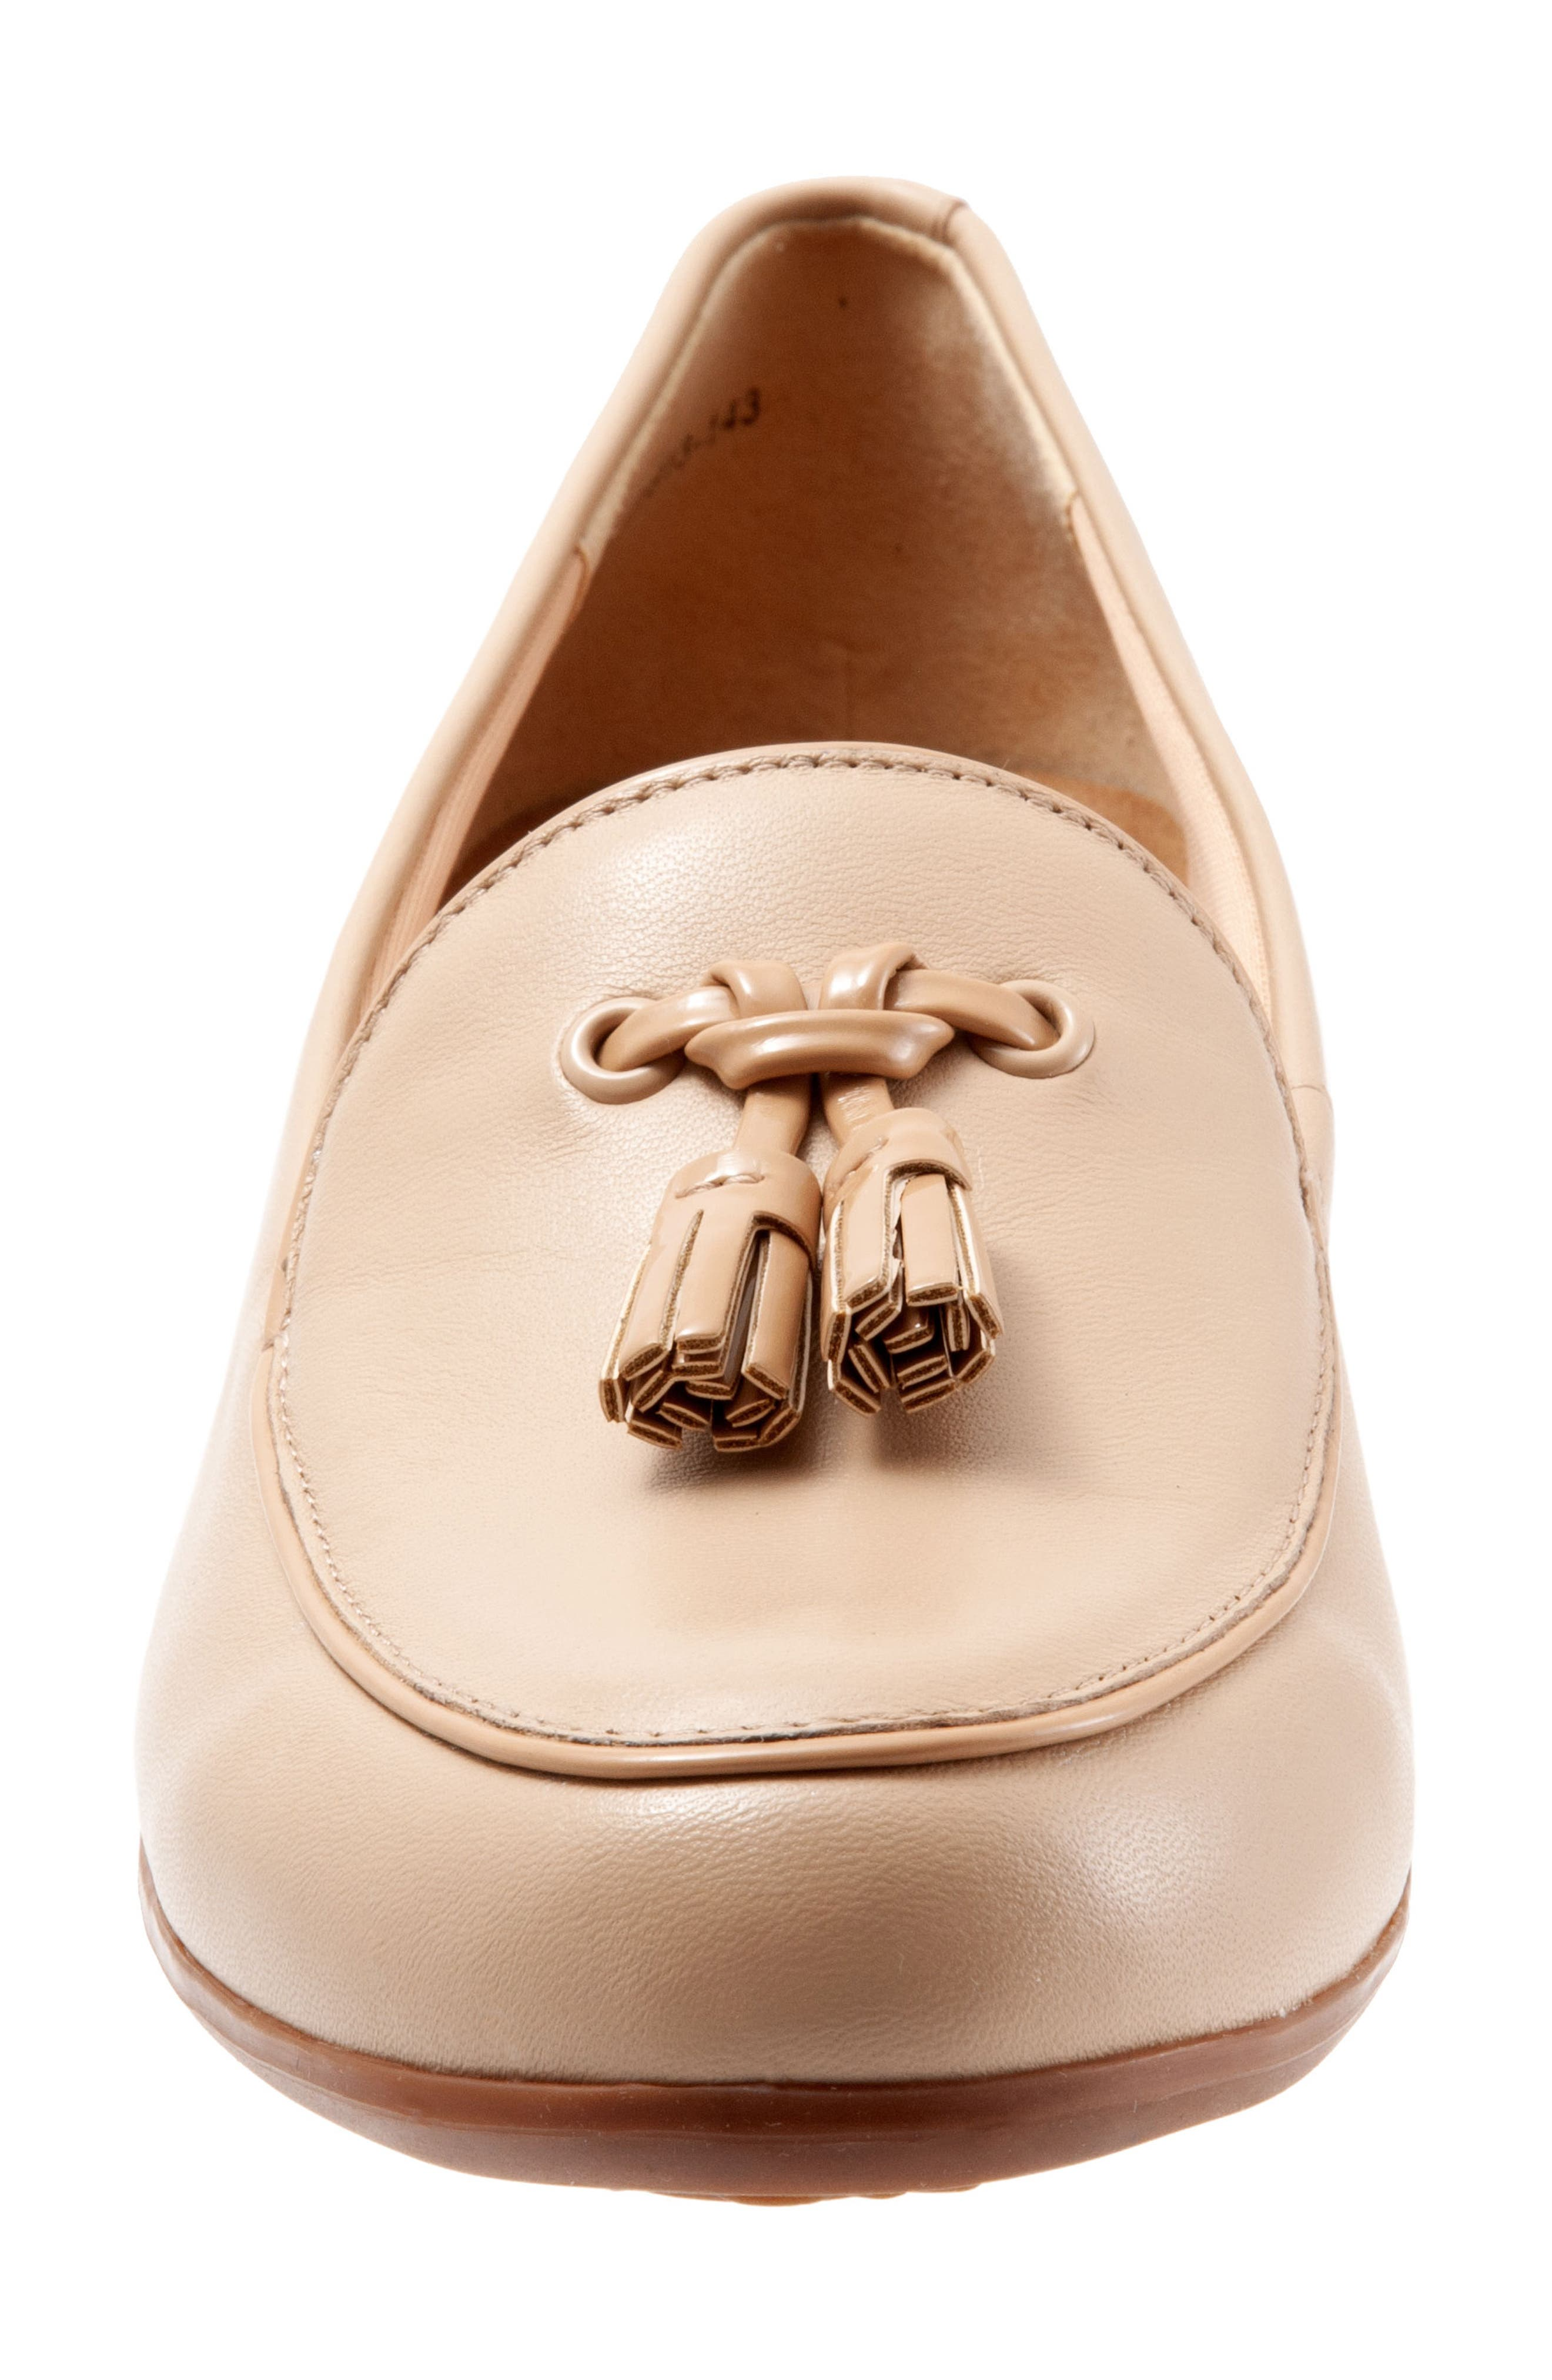 TROTTERS, Mary Tassel Loafer, Alternate thumbnail 4, color, NUDE LEATHER